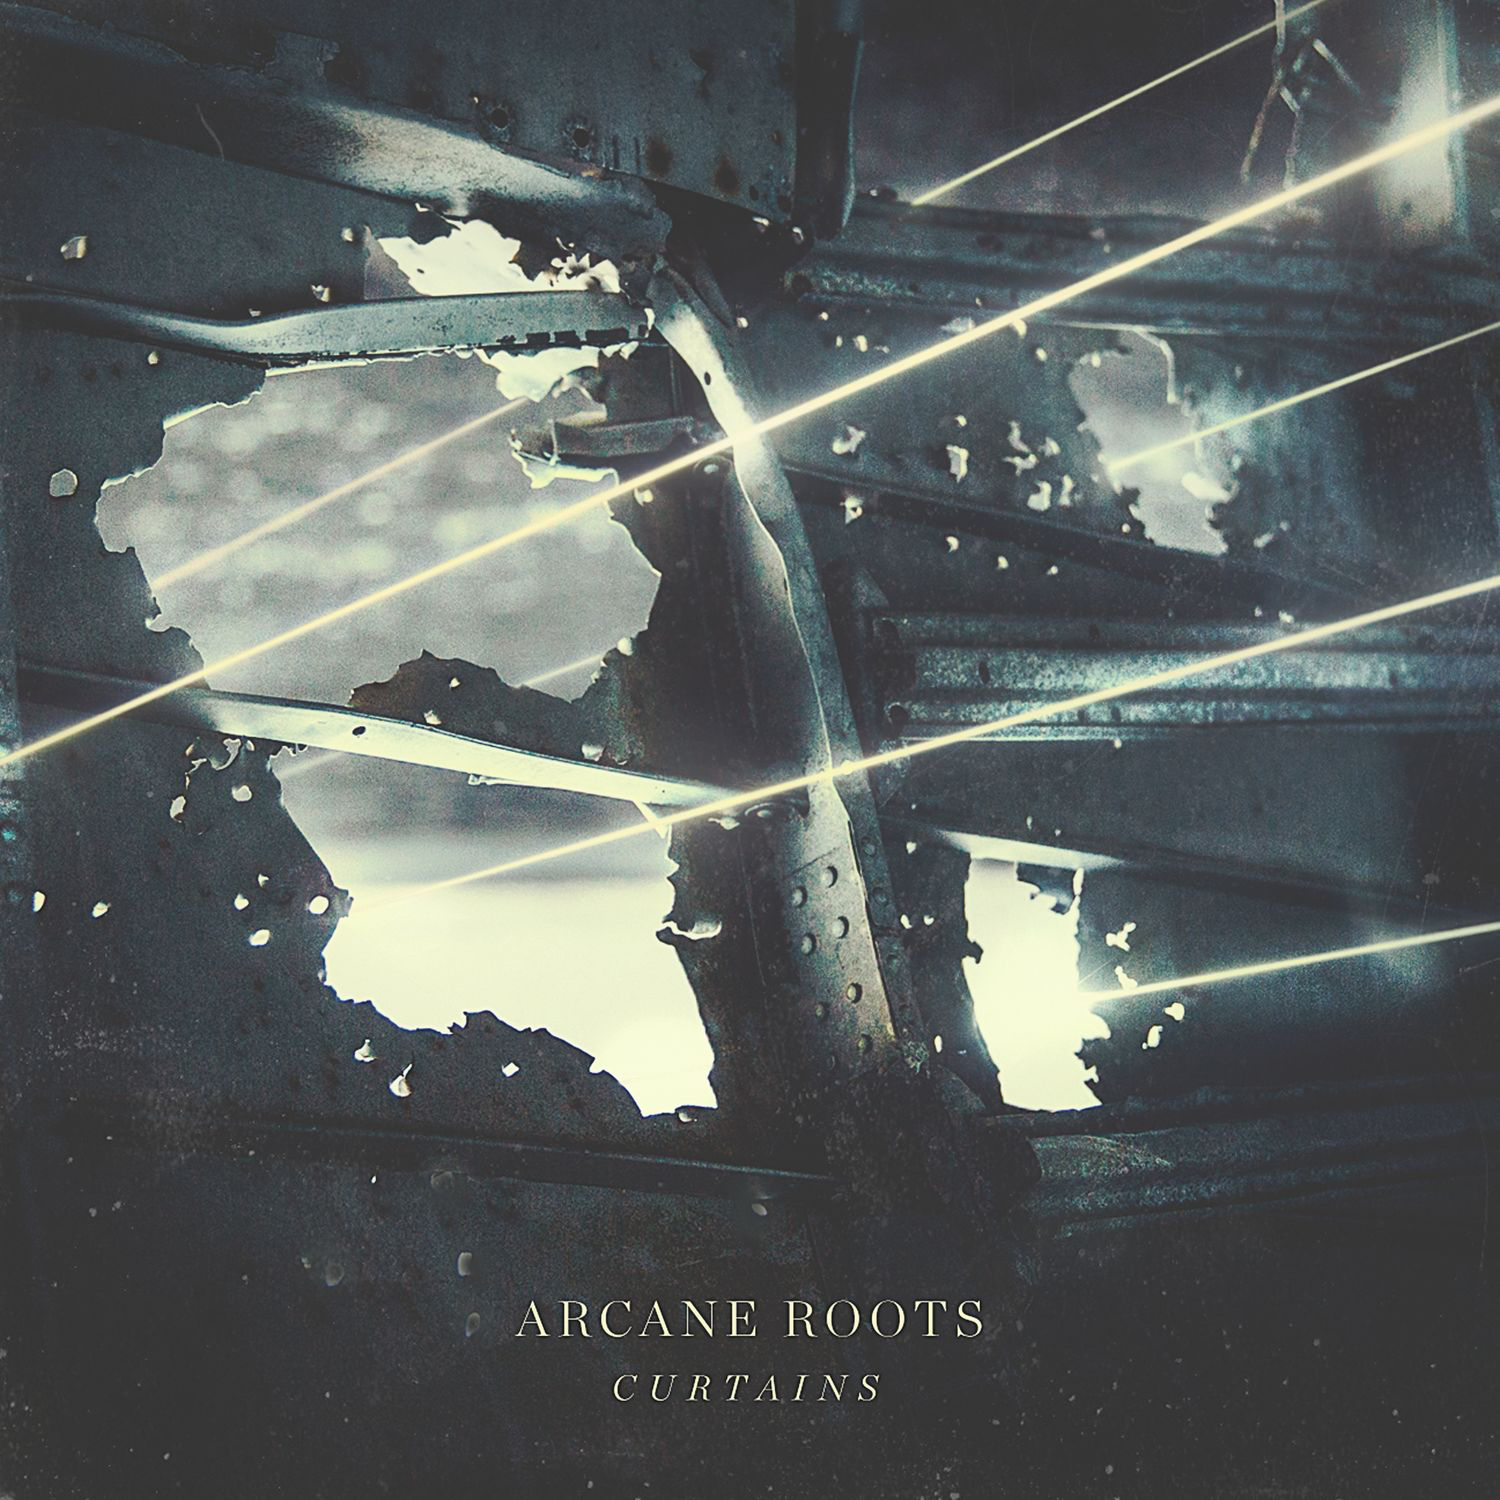 Arcane Roots - Curtains [single] (2016)